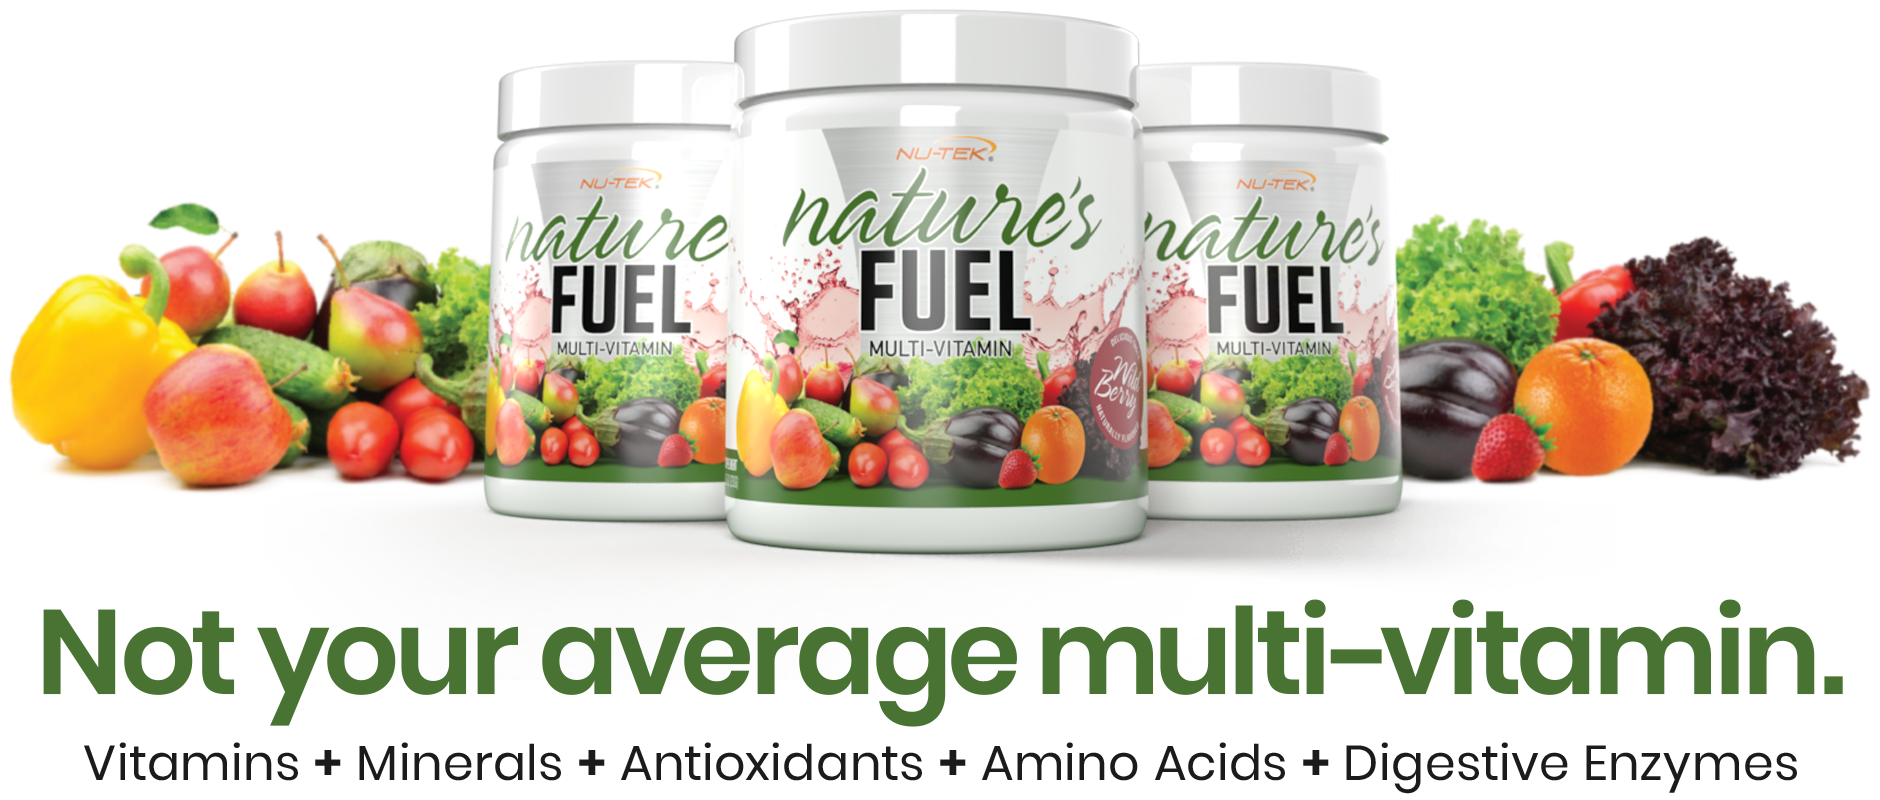 Nature's FUEL. Not your average multi-vitamin.